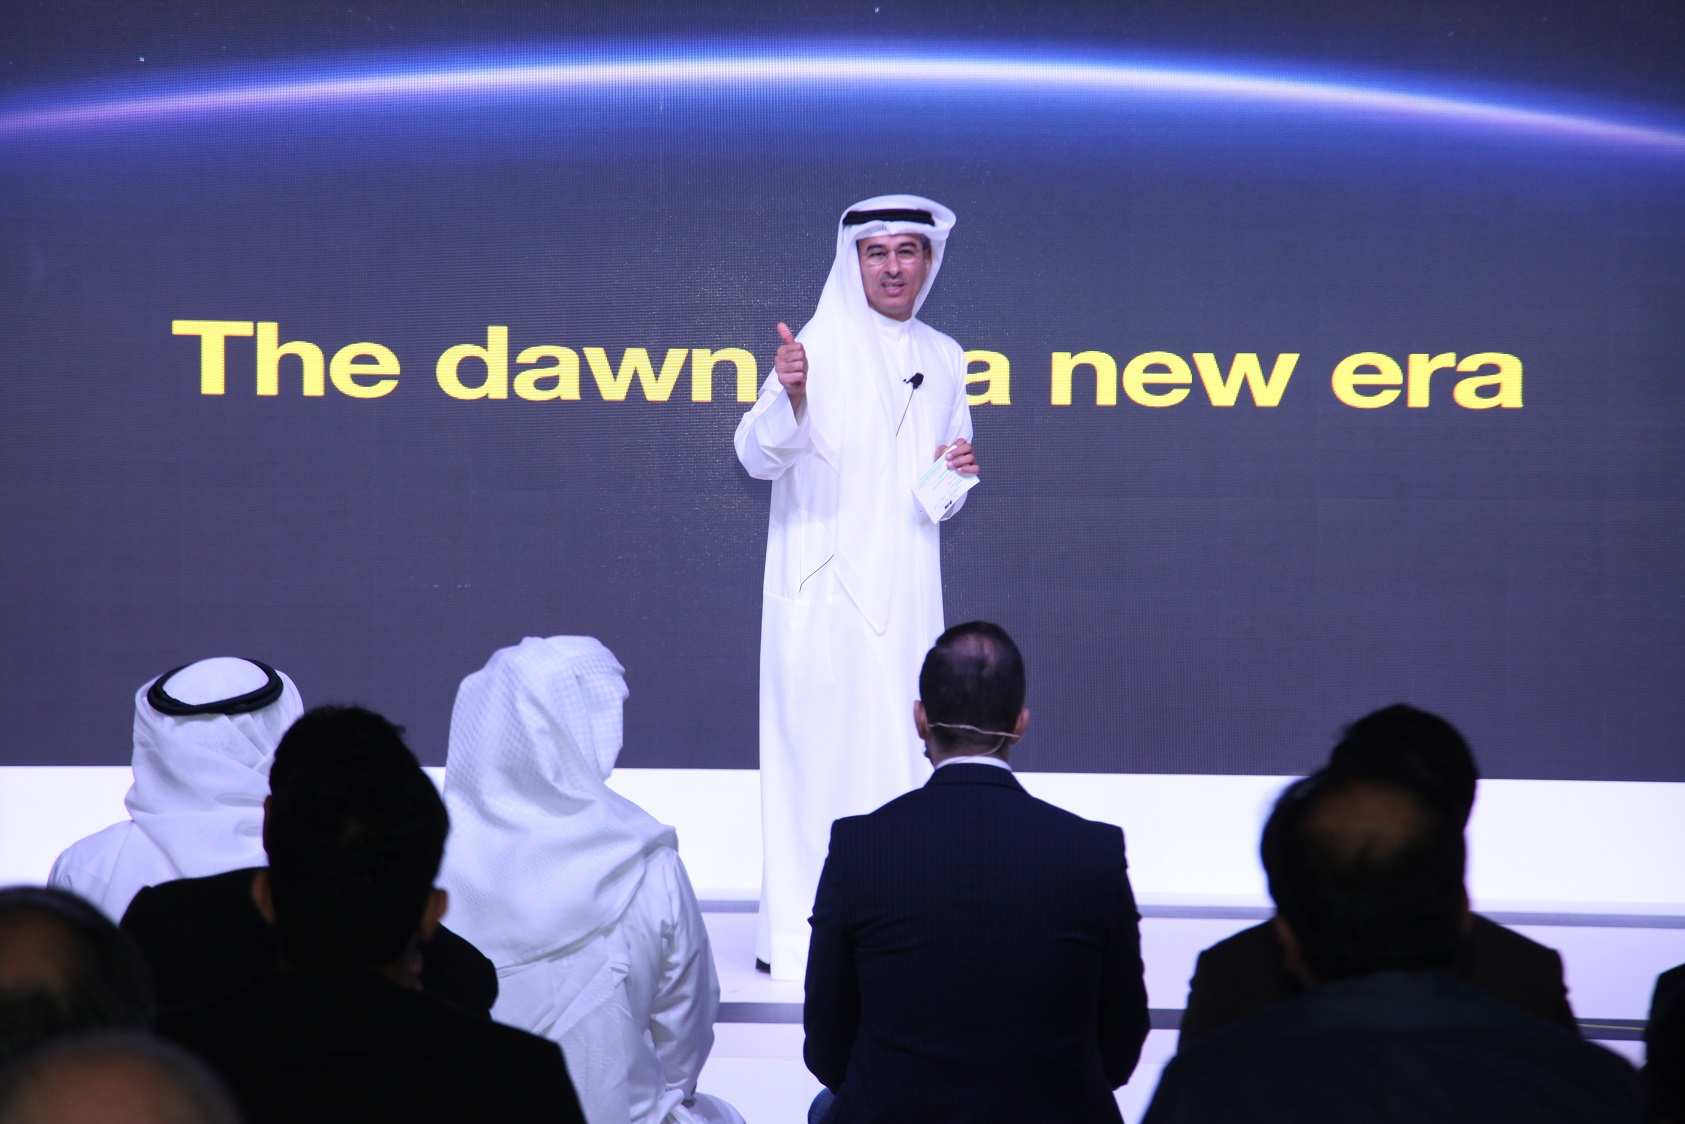 Noon Puts Fashion Centre Stage in its bid to Dominate the e-commerce Sector in the Middle East